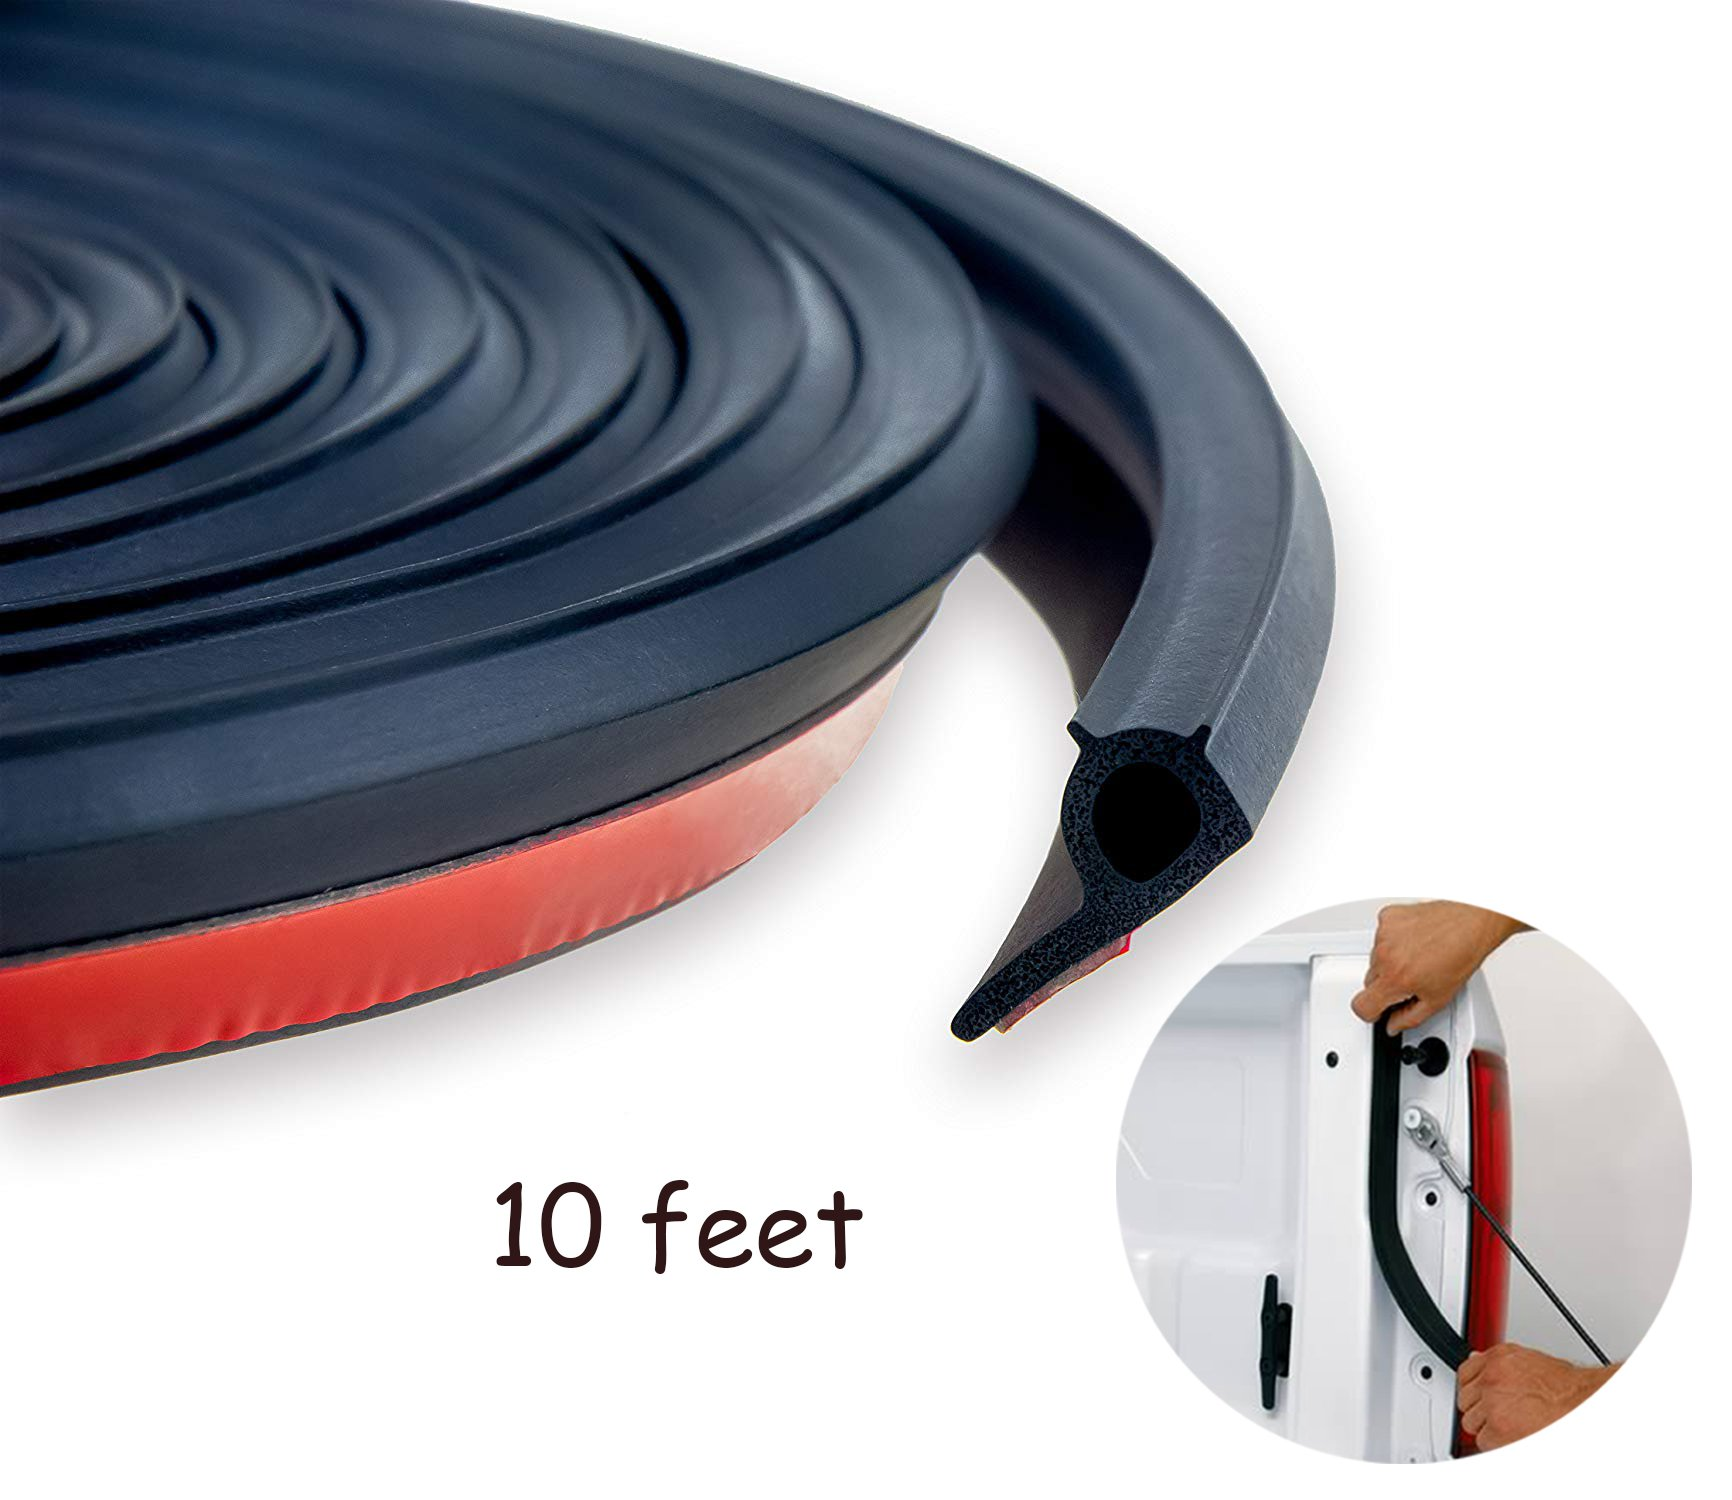 Oiyeefo Universal Adhesive Tailgate Seal Kit with Taper for Pickup Truck Bed (15 ft) by Oiyeefo